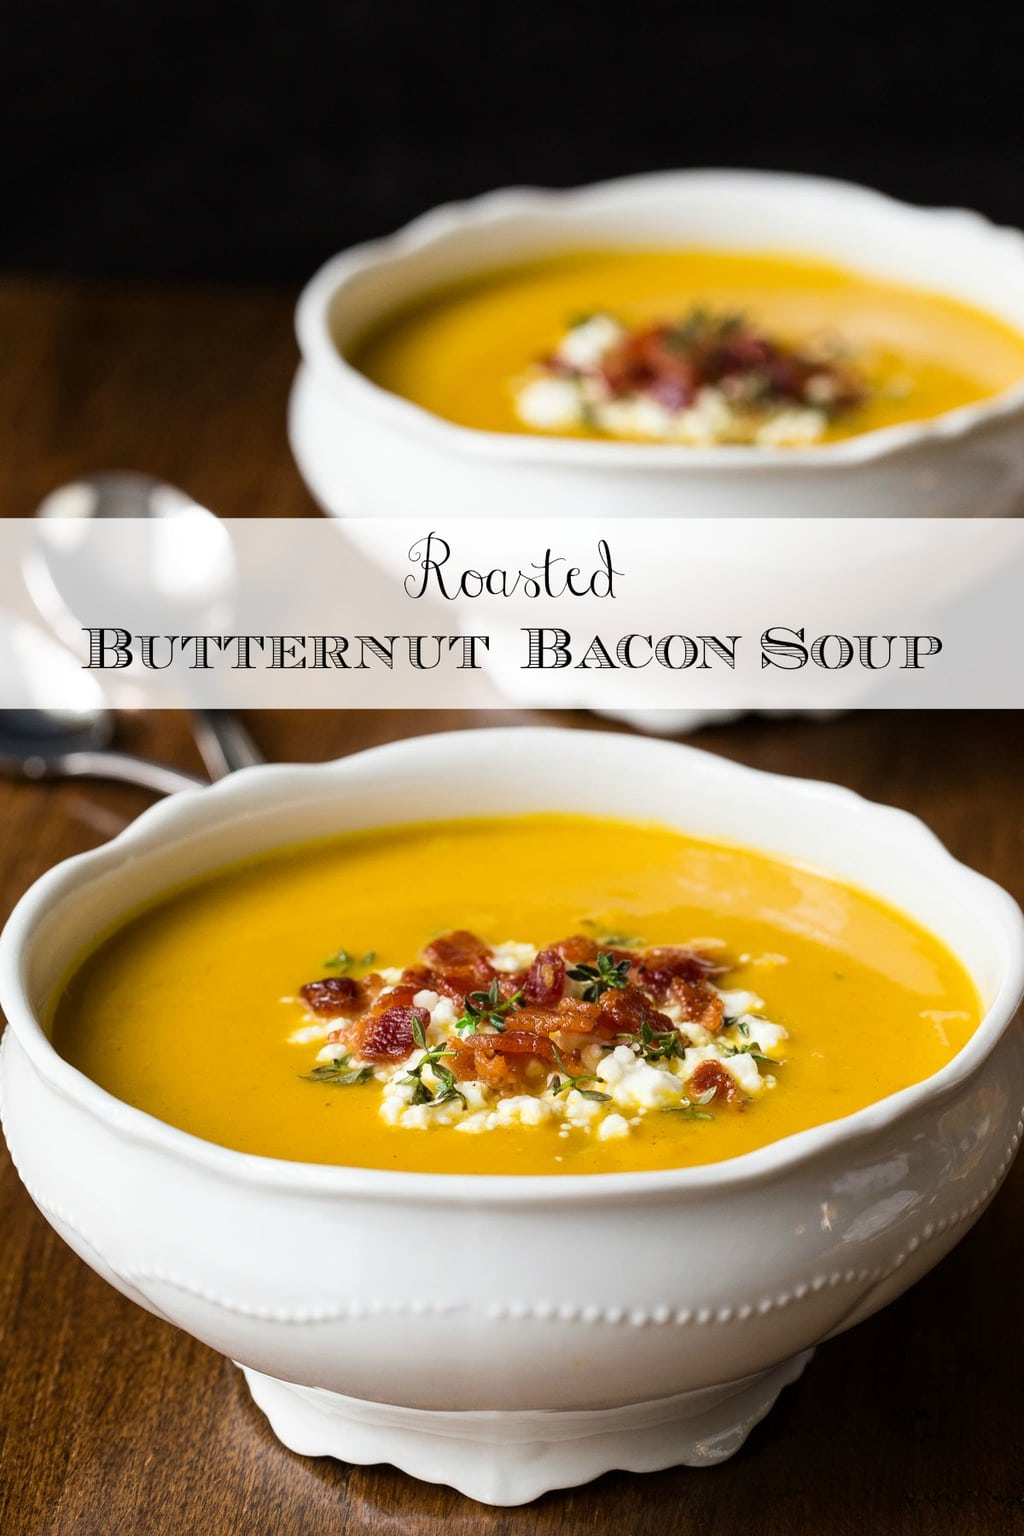 Roasted Butternut Bacon Soup